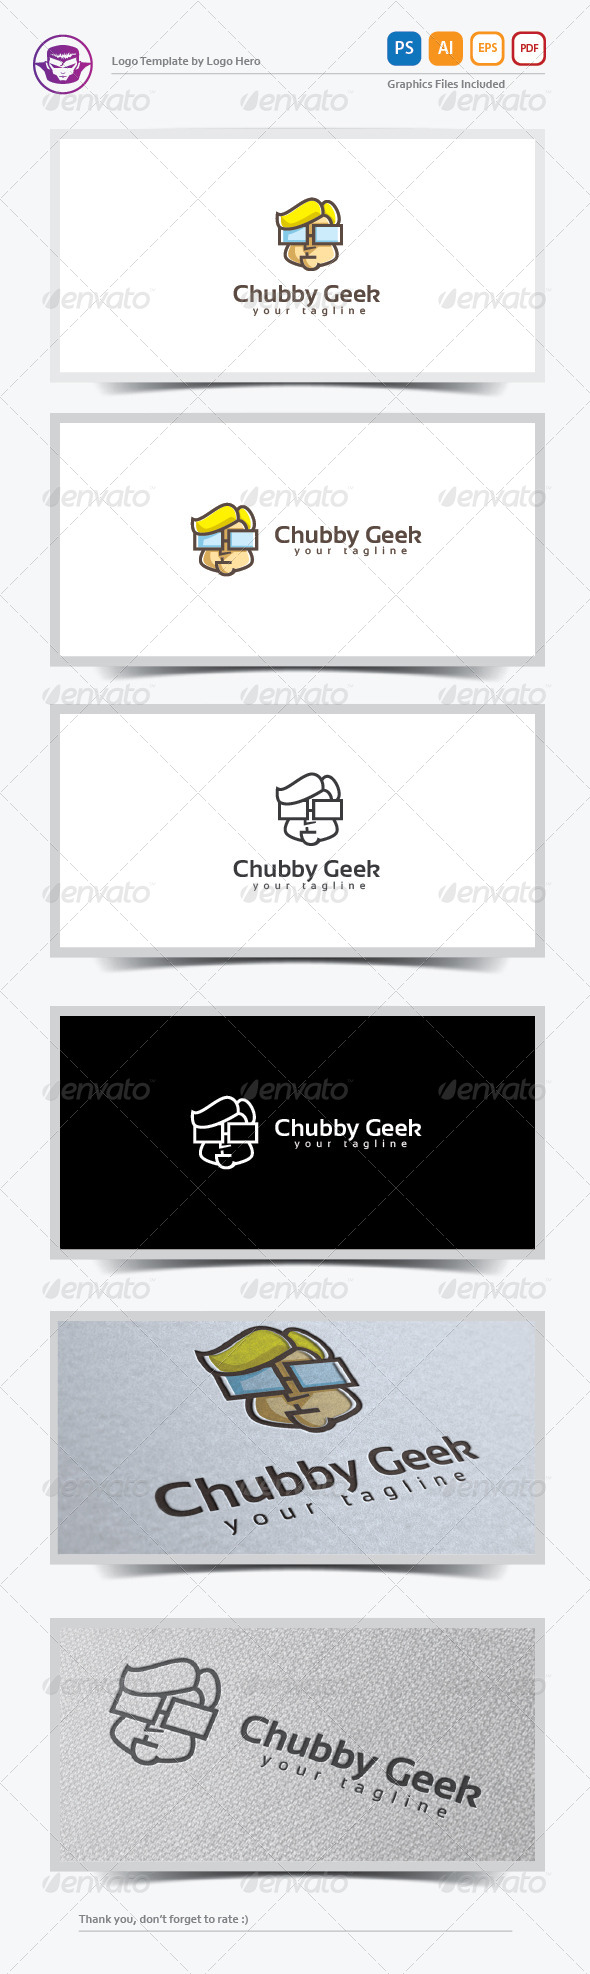 GraphicRiver Chubby Geek Logo Template 8259740